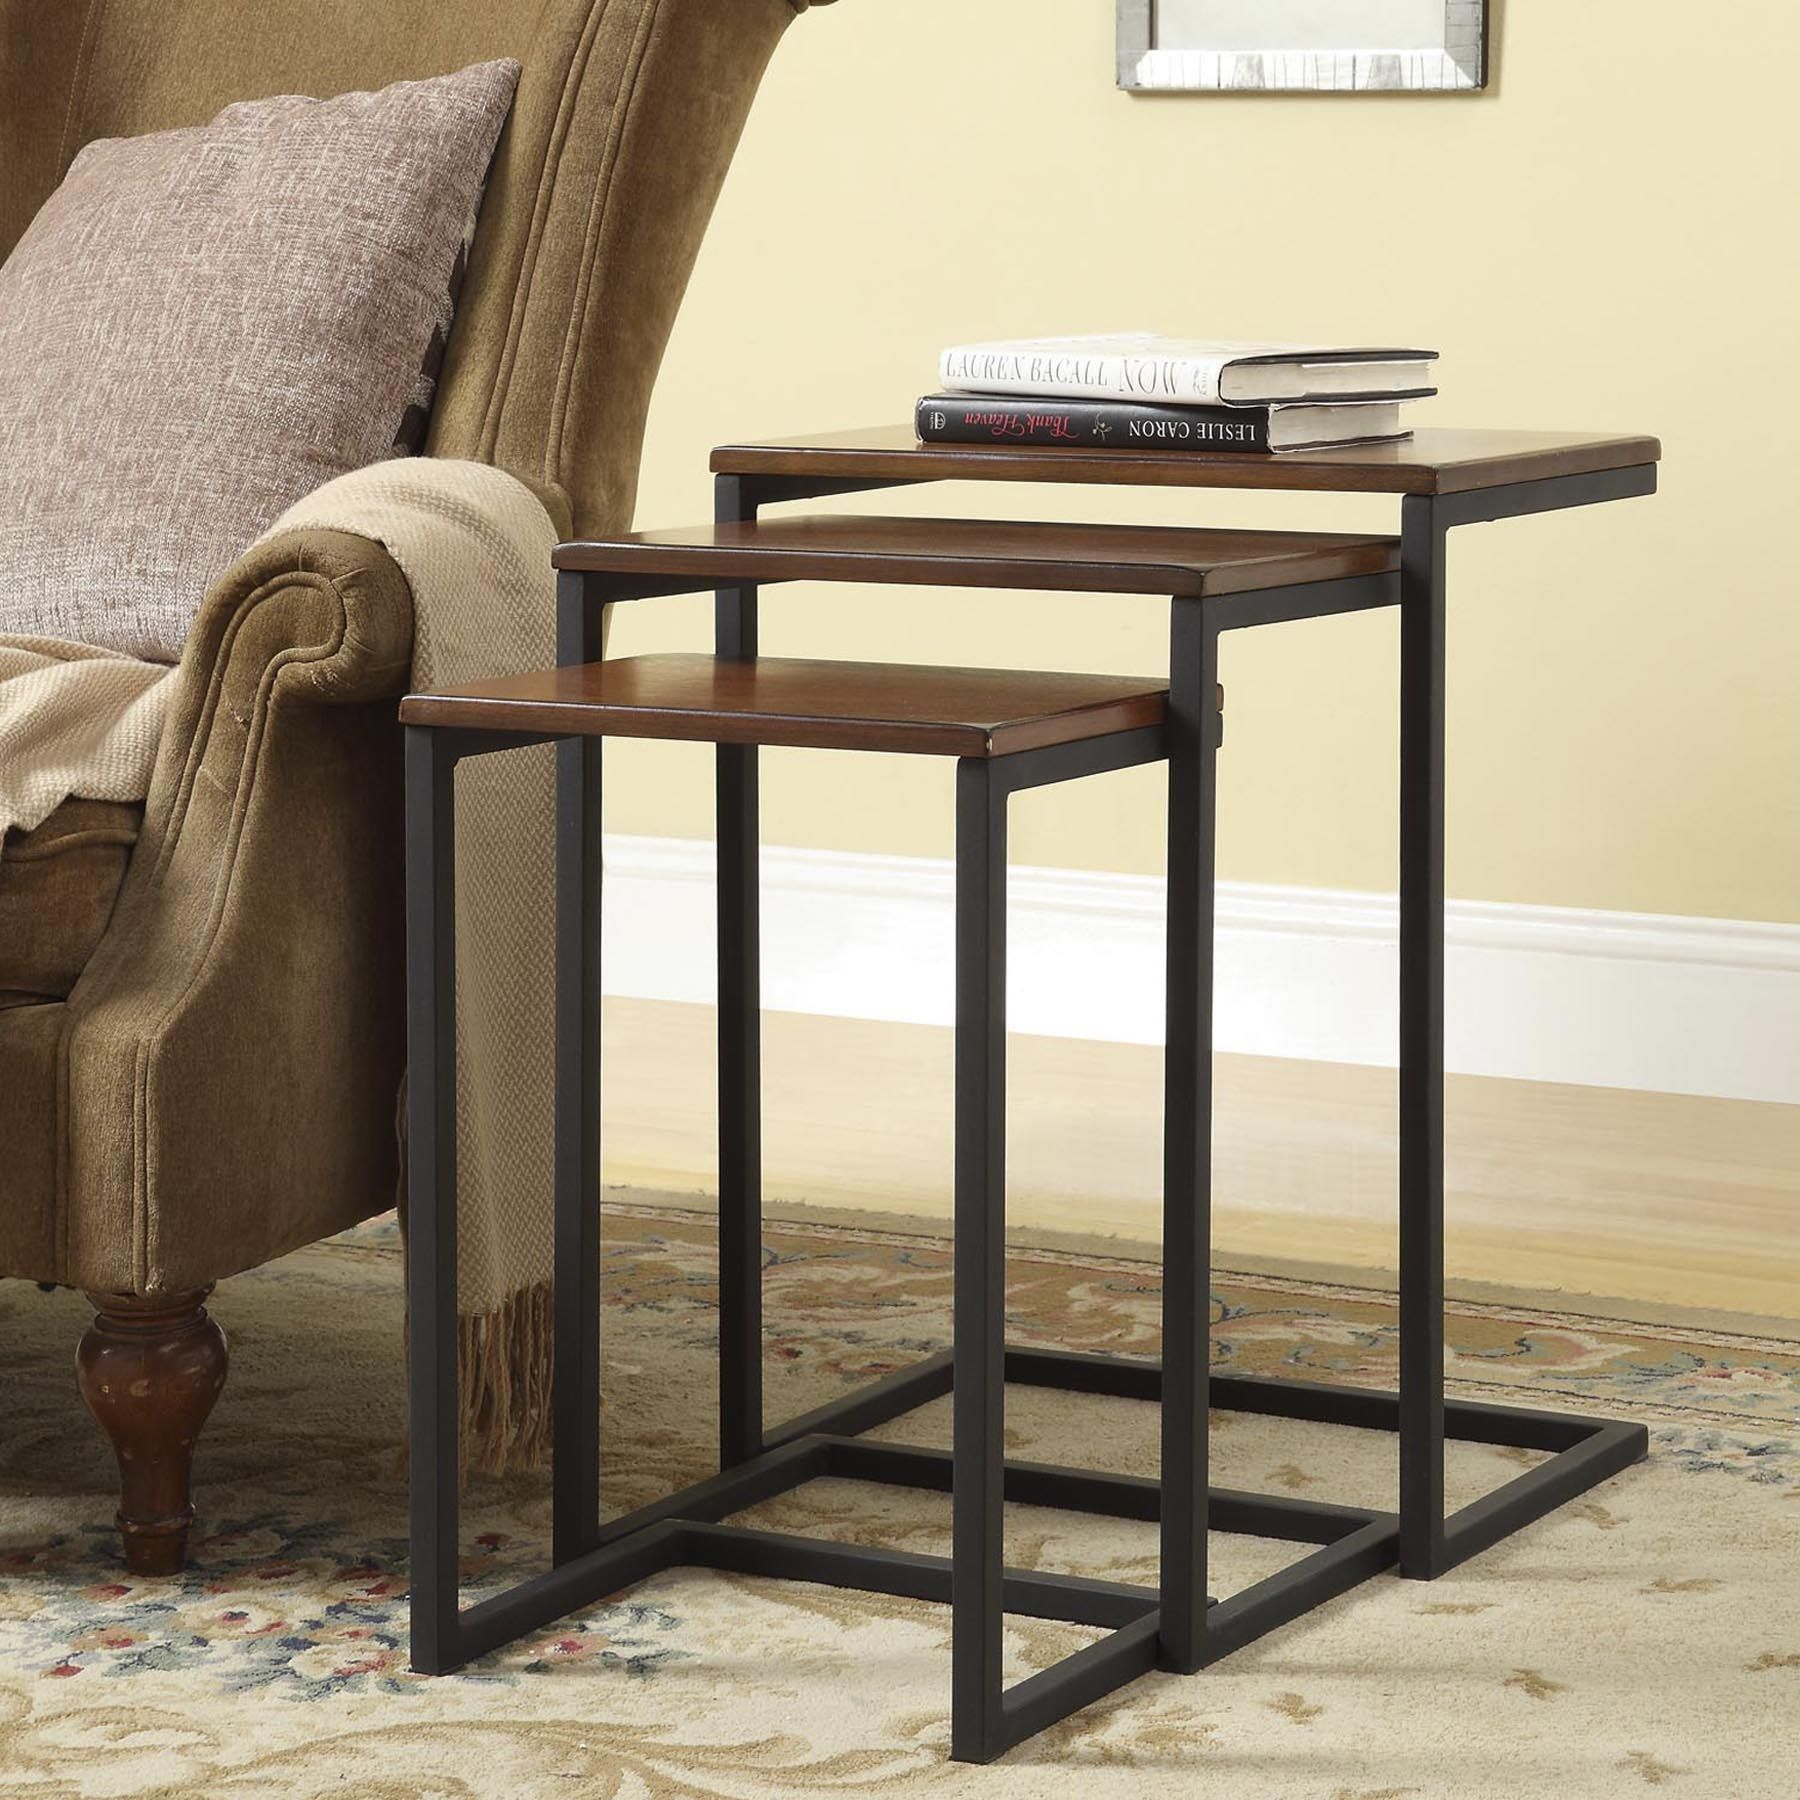 Rich Chestnut Finished Tops Pair With Blackened Metal To Style These Three  Olivia Nesting Tables,